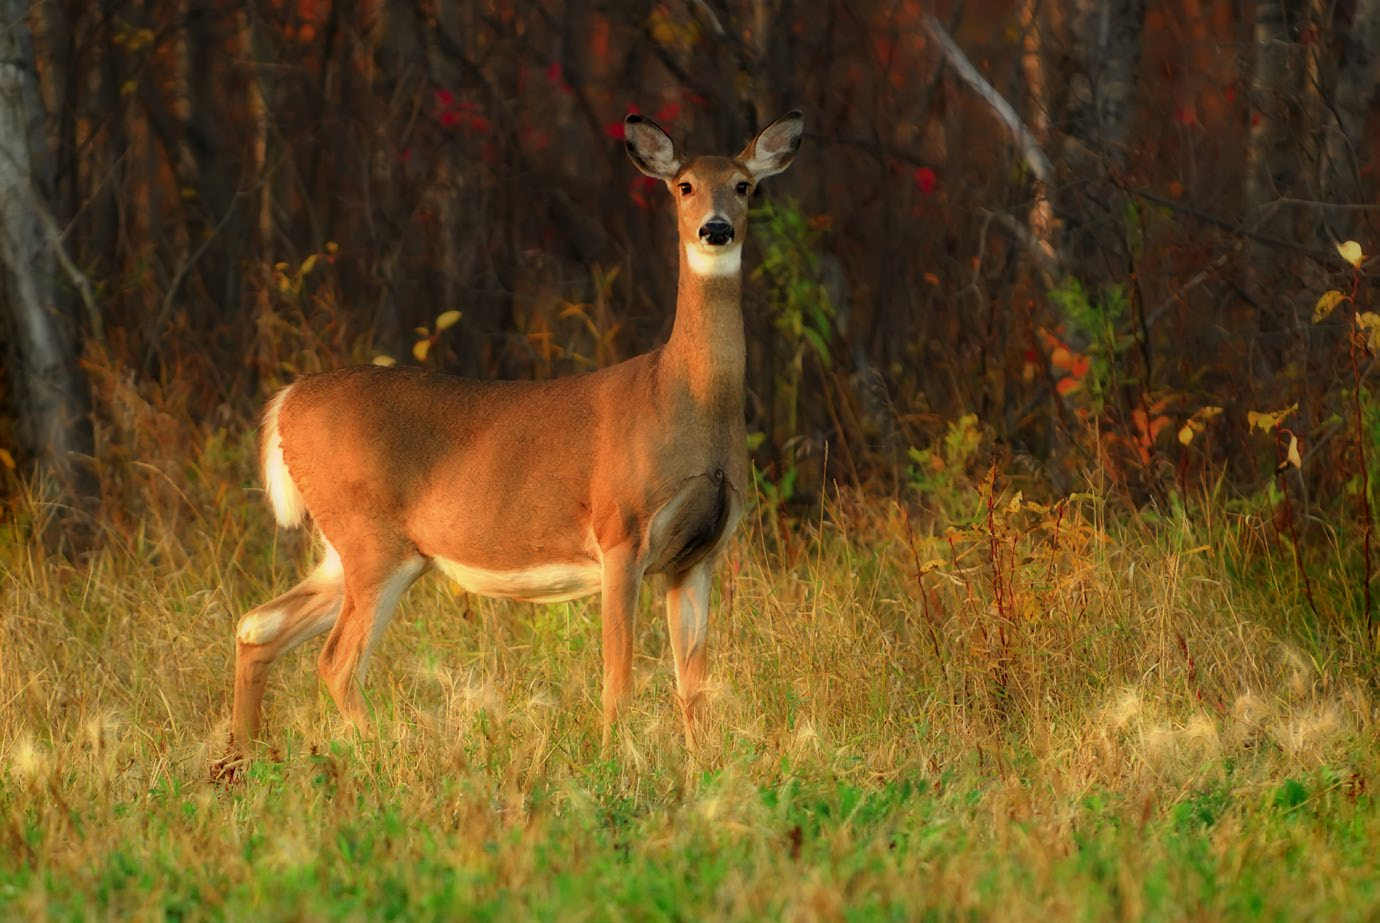 A white-tailed doe stands in a grassy clearing, looking directly at the camera. An autumn forest is visible in the background.